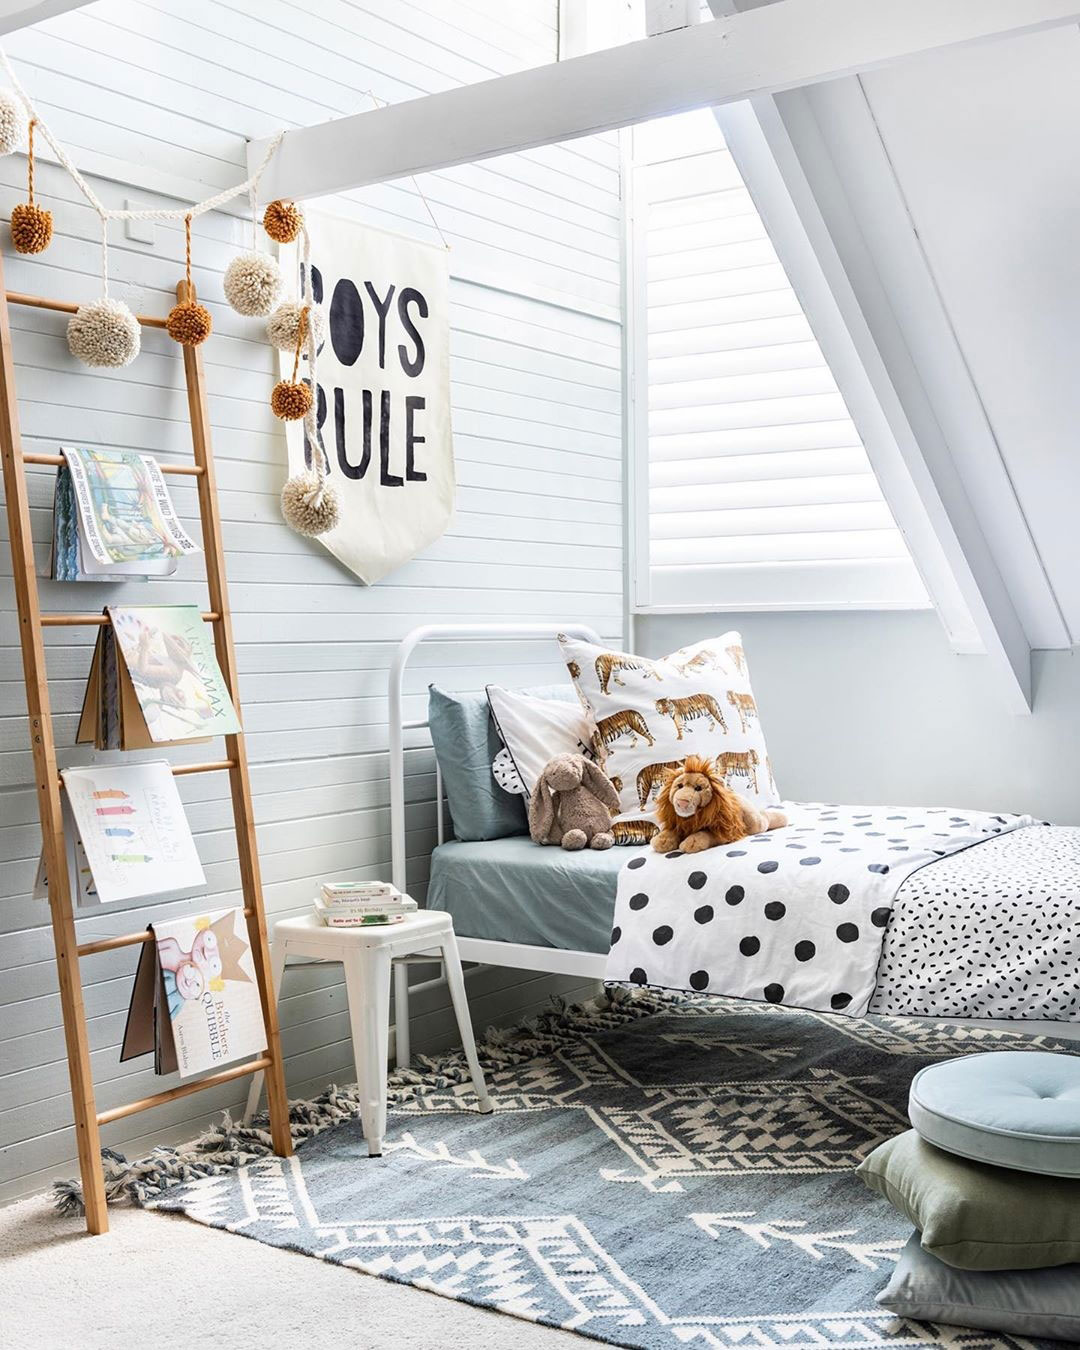 boys rule wall banner